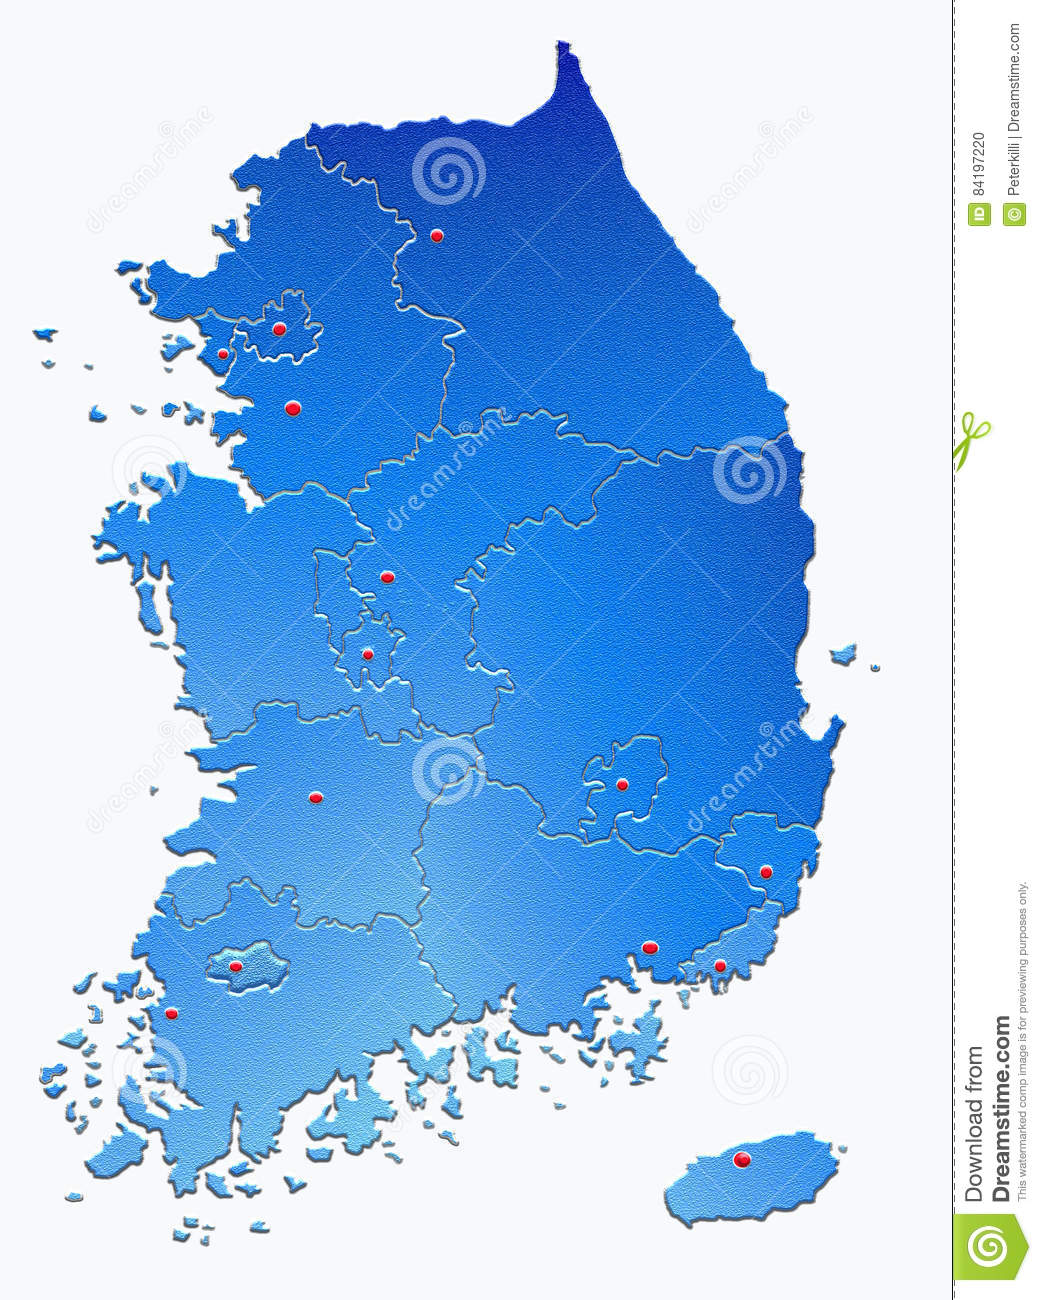 South Korea Map stock illustration. Illustration of country ... on map of malaya, map of germany, map of caribbean islands, map of kyushu, map of united states, map of north korea, map of switzerland, map of oman, map of korea and surrounding countries, map of south pacific, map hong kong, map of guam, map of seoul, map of venezuela, map of france, map of asia, map of south korean cities and towns, map of korean peninsula, map of iceland, map of philippines,